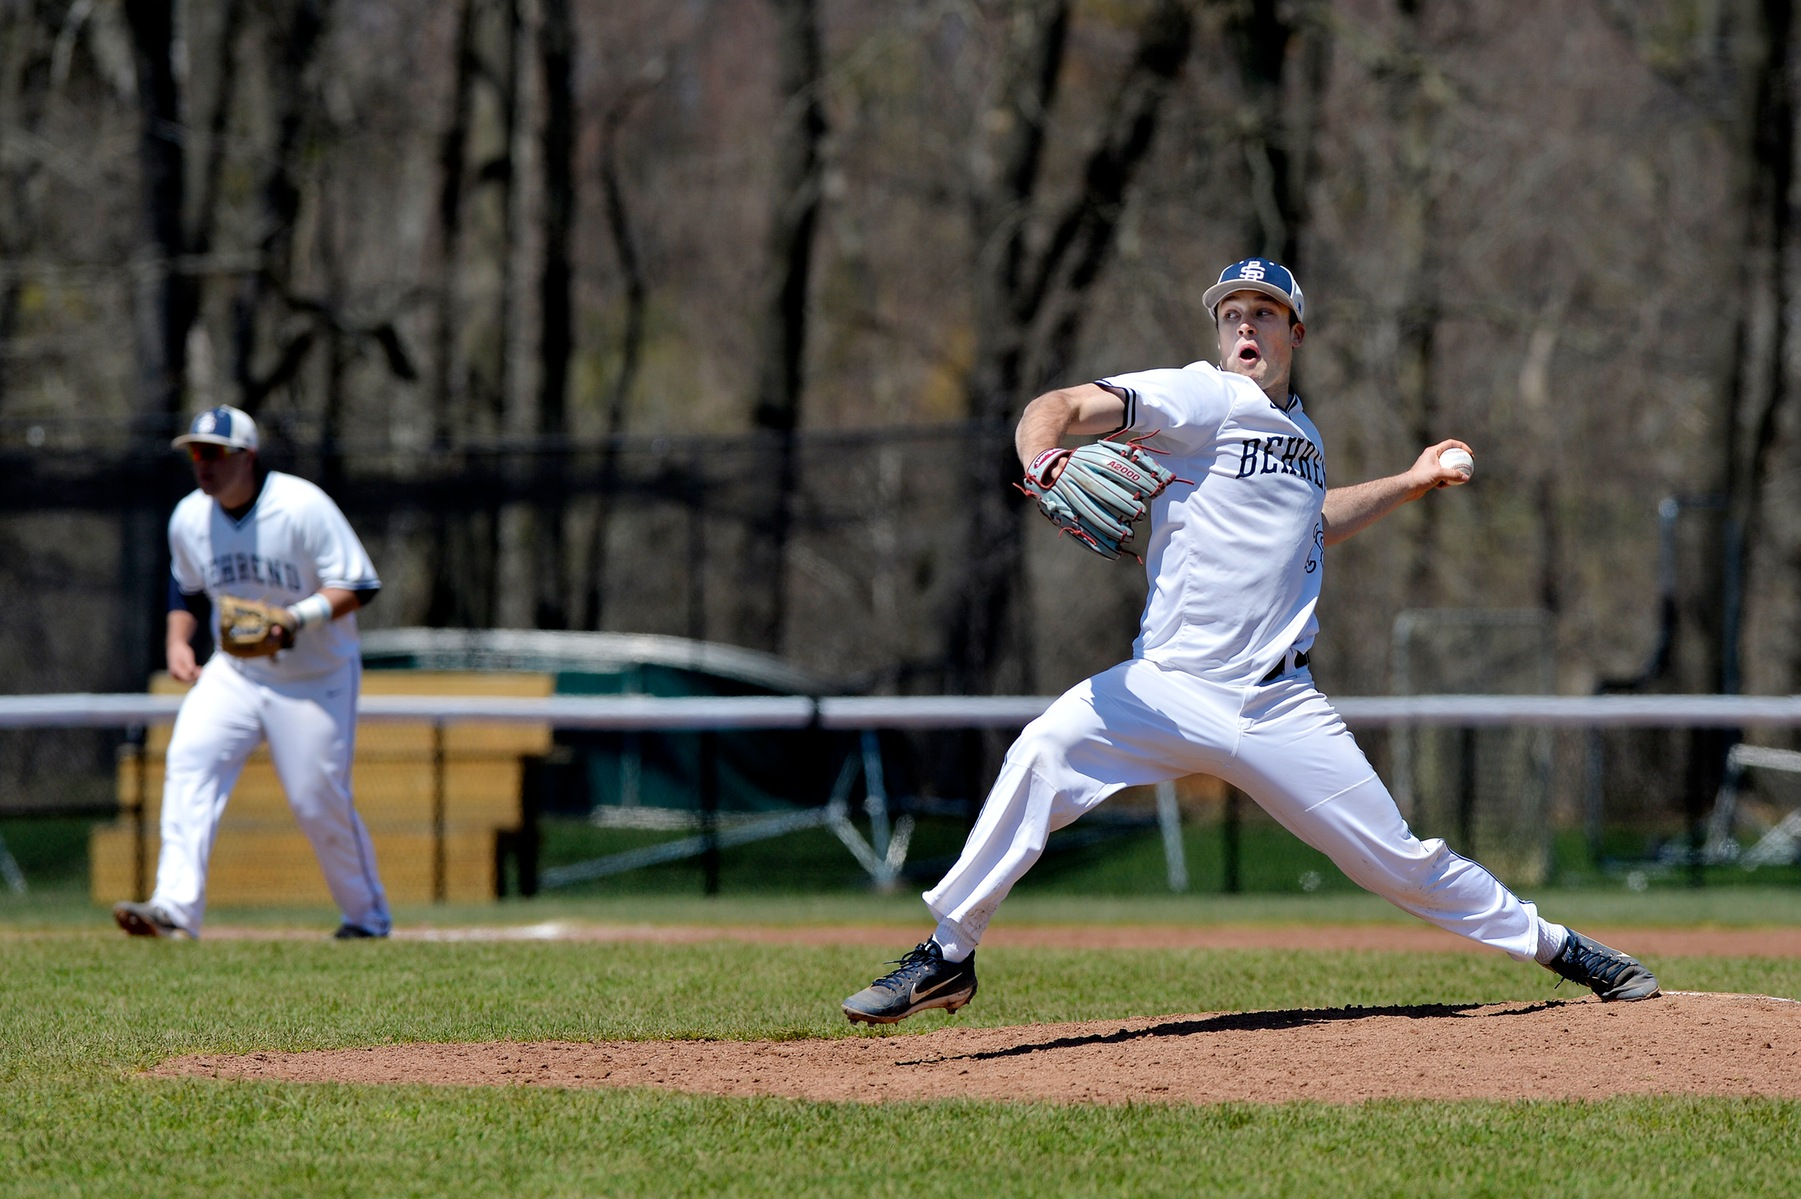 Herzing Selected AMCC Pitcher of the Week